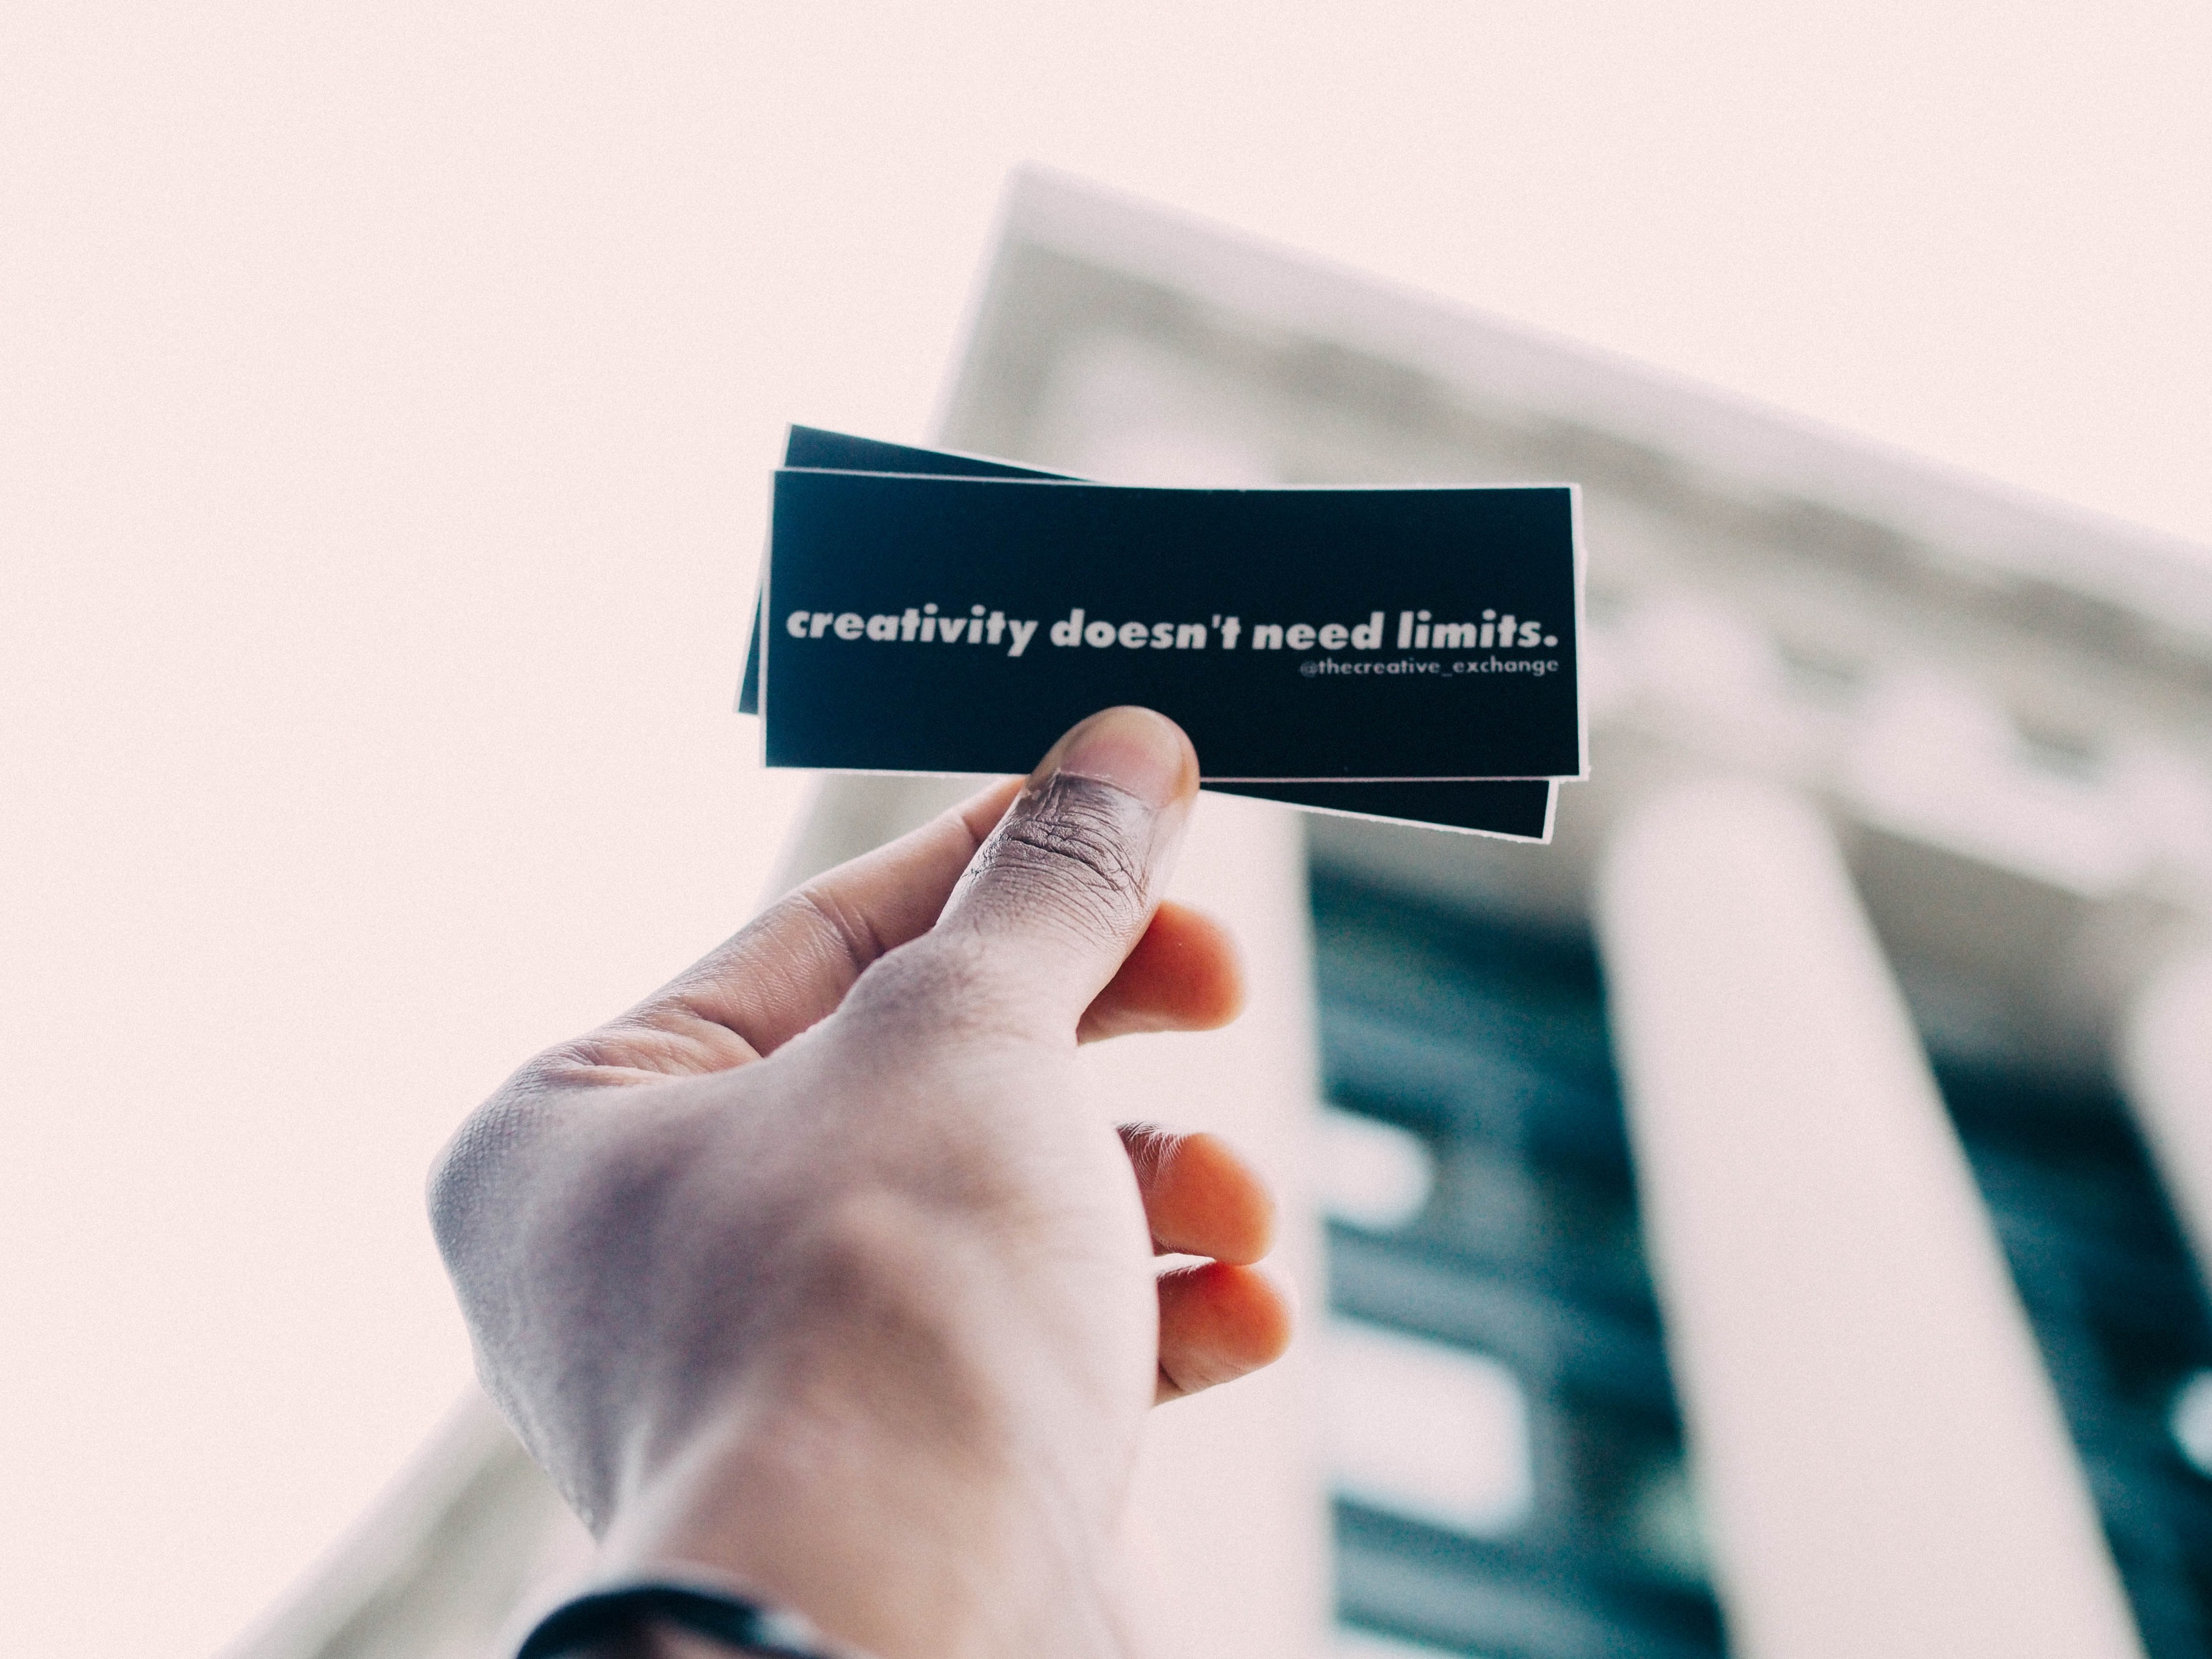 A sticker says: creativity doesn't need limits.